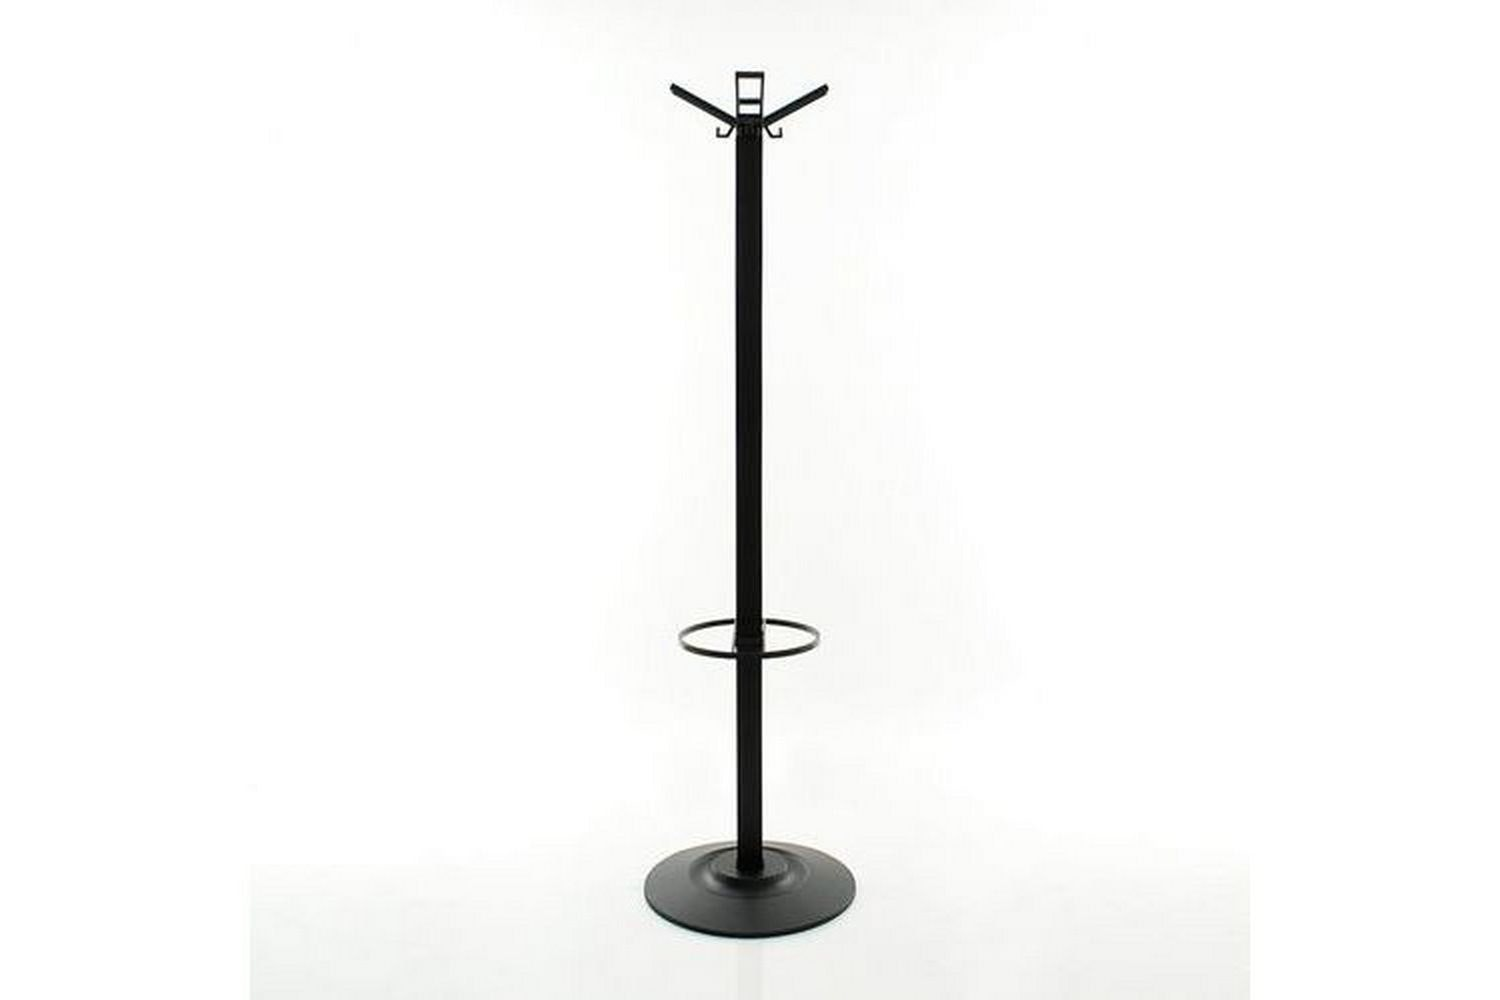 Segmenti Clothes Stand by Michele De Lucchi for Kartell